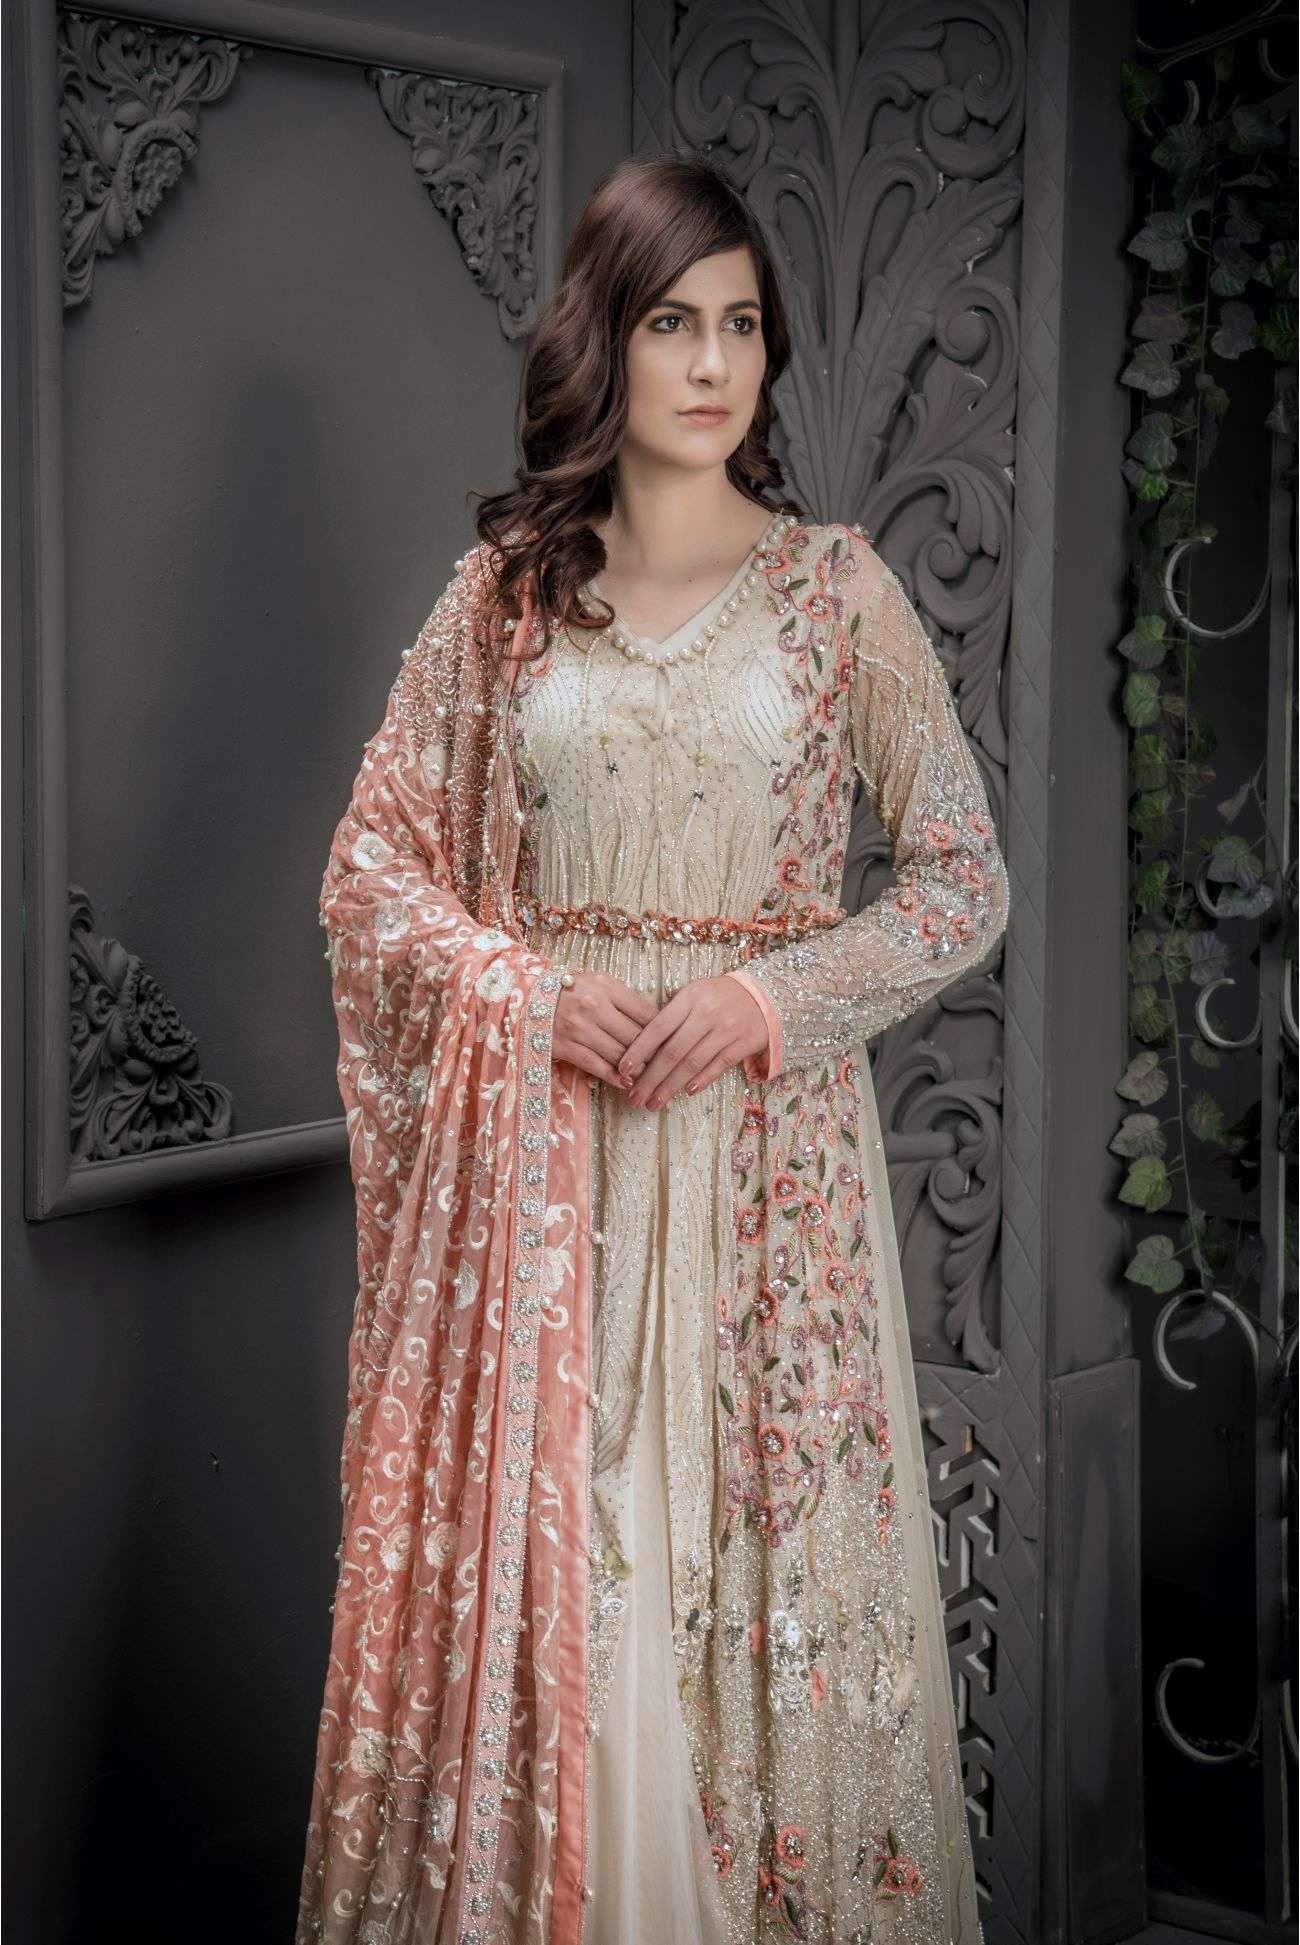 Buy Exclusive Fone And Peach Shadi And Valima – Sabd205 Online In USA, Uk & Pakistan - 01